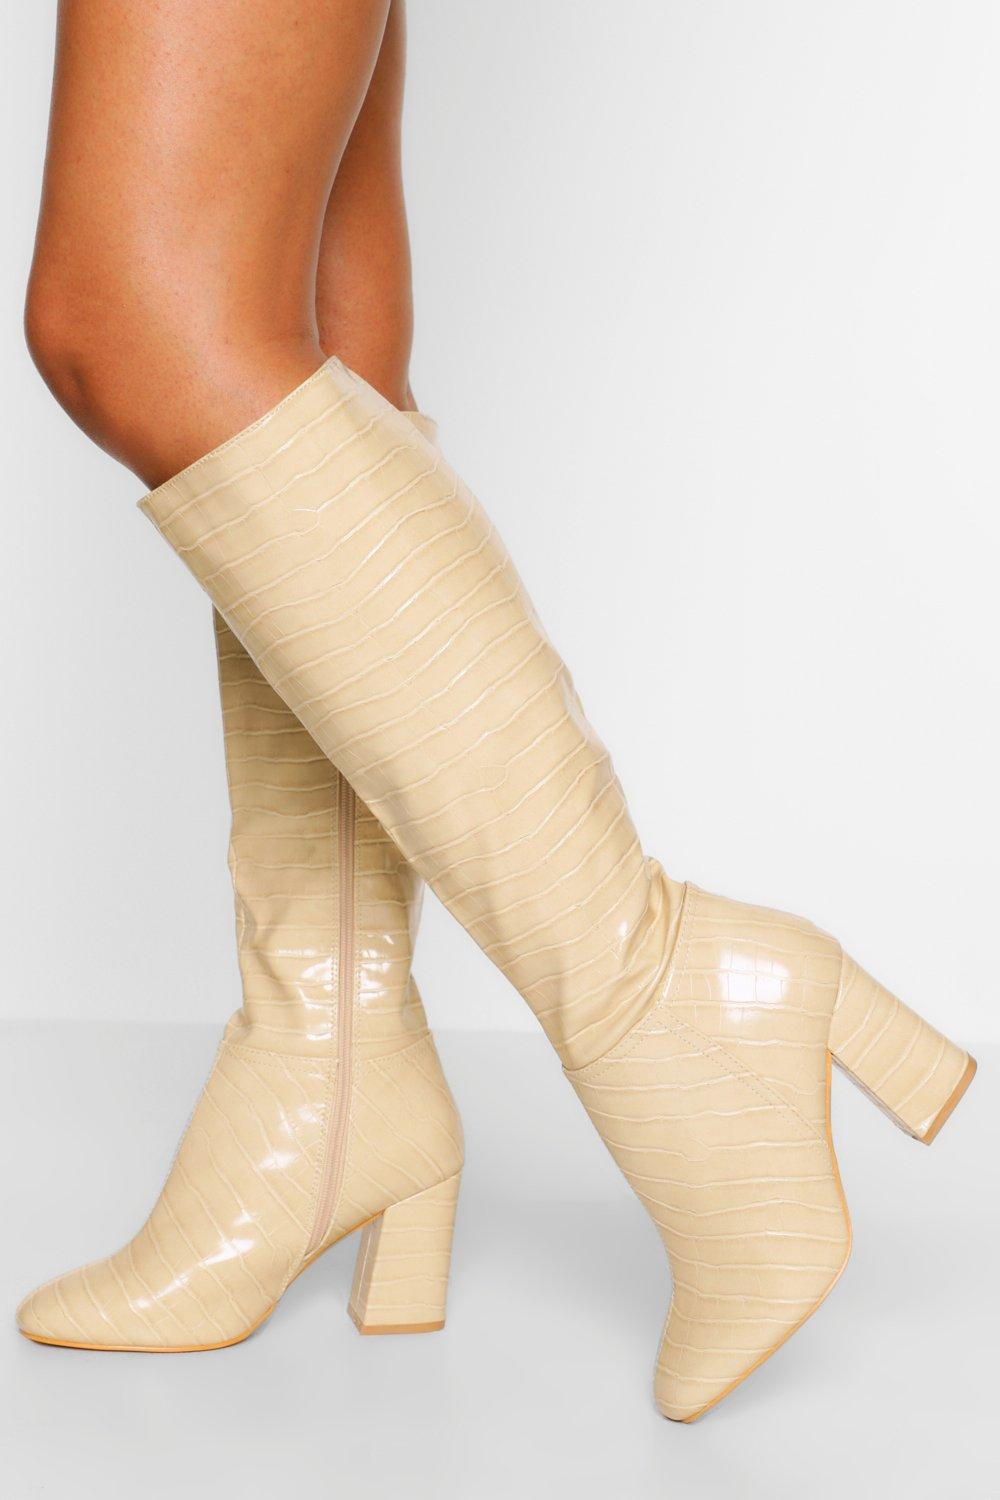 Vintage Boots, Retro Boots Womens Wide Fit Block Heel Knee Boot - White - 10 $34.00 AT vintagedancer.com